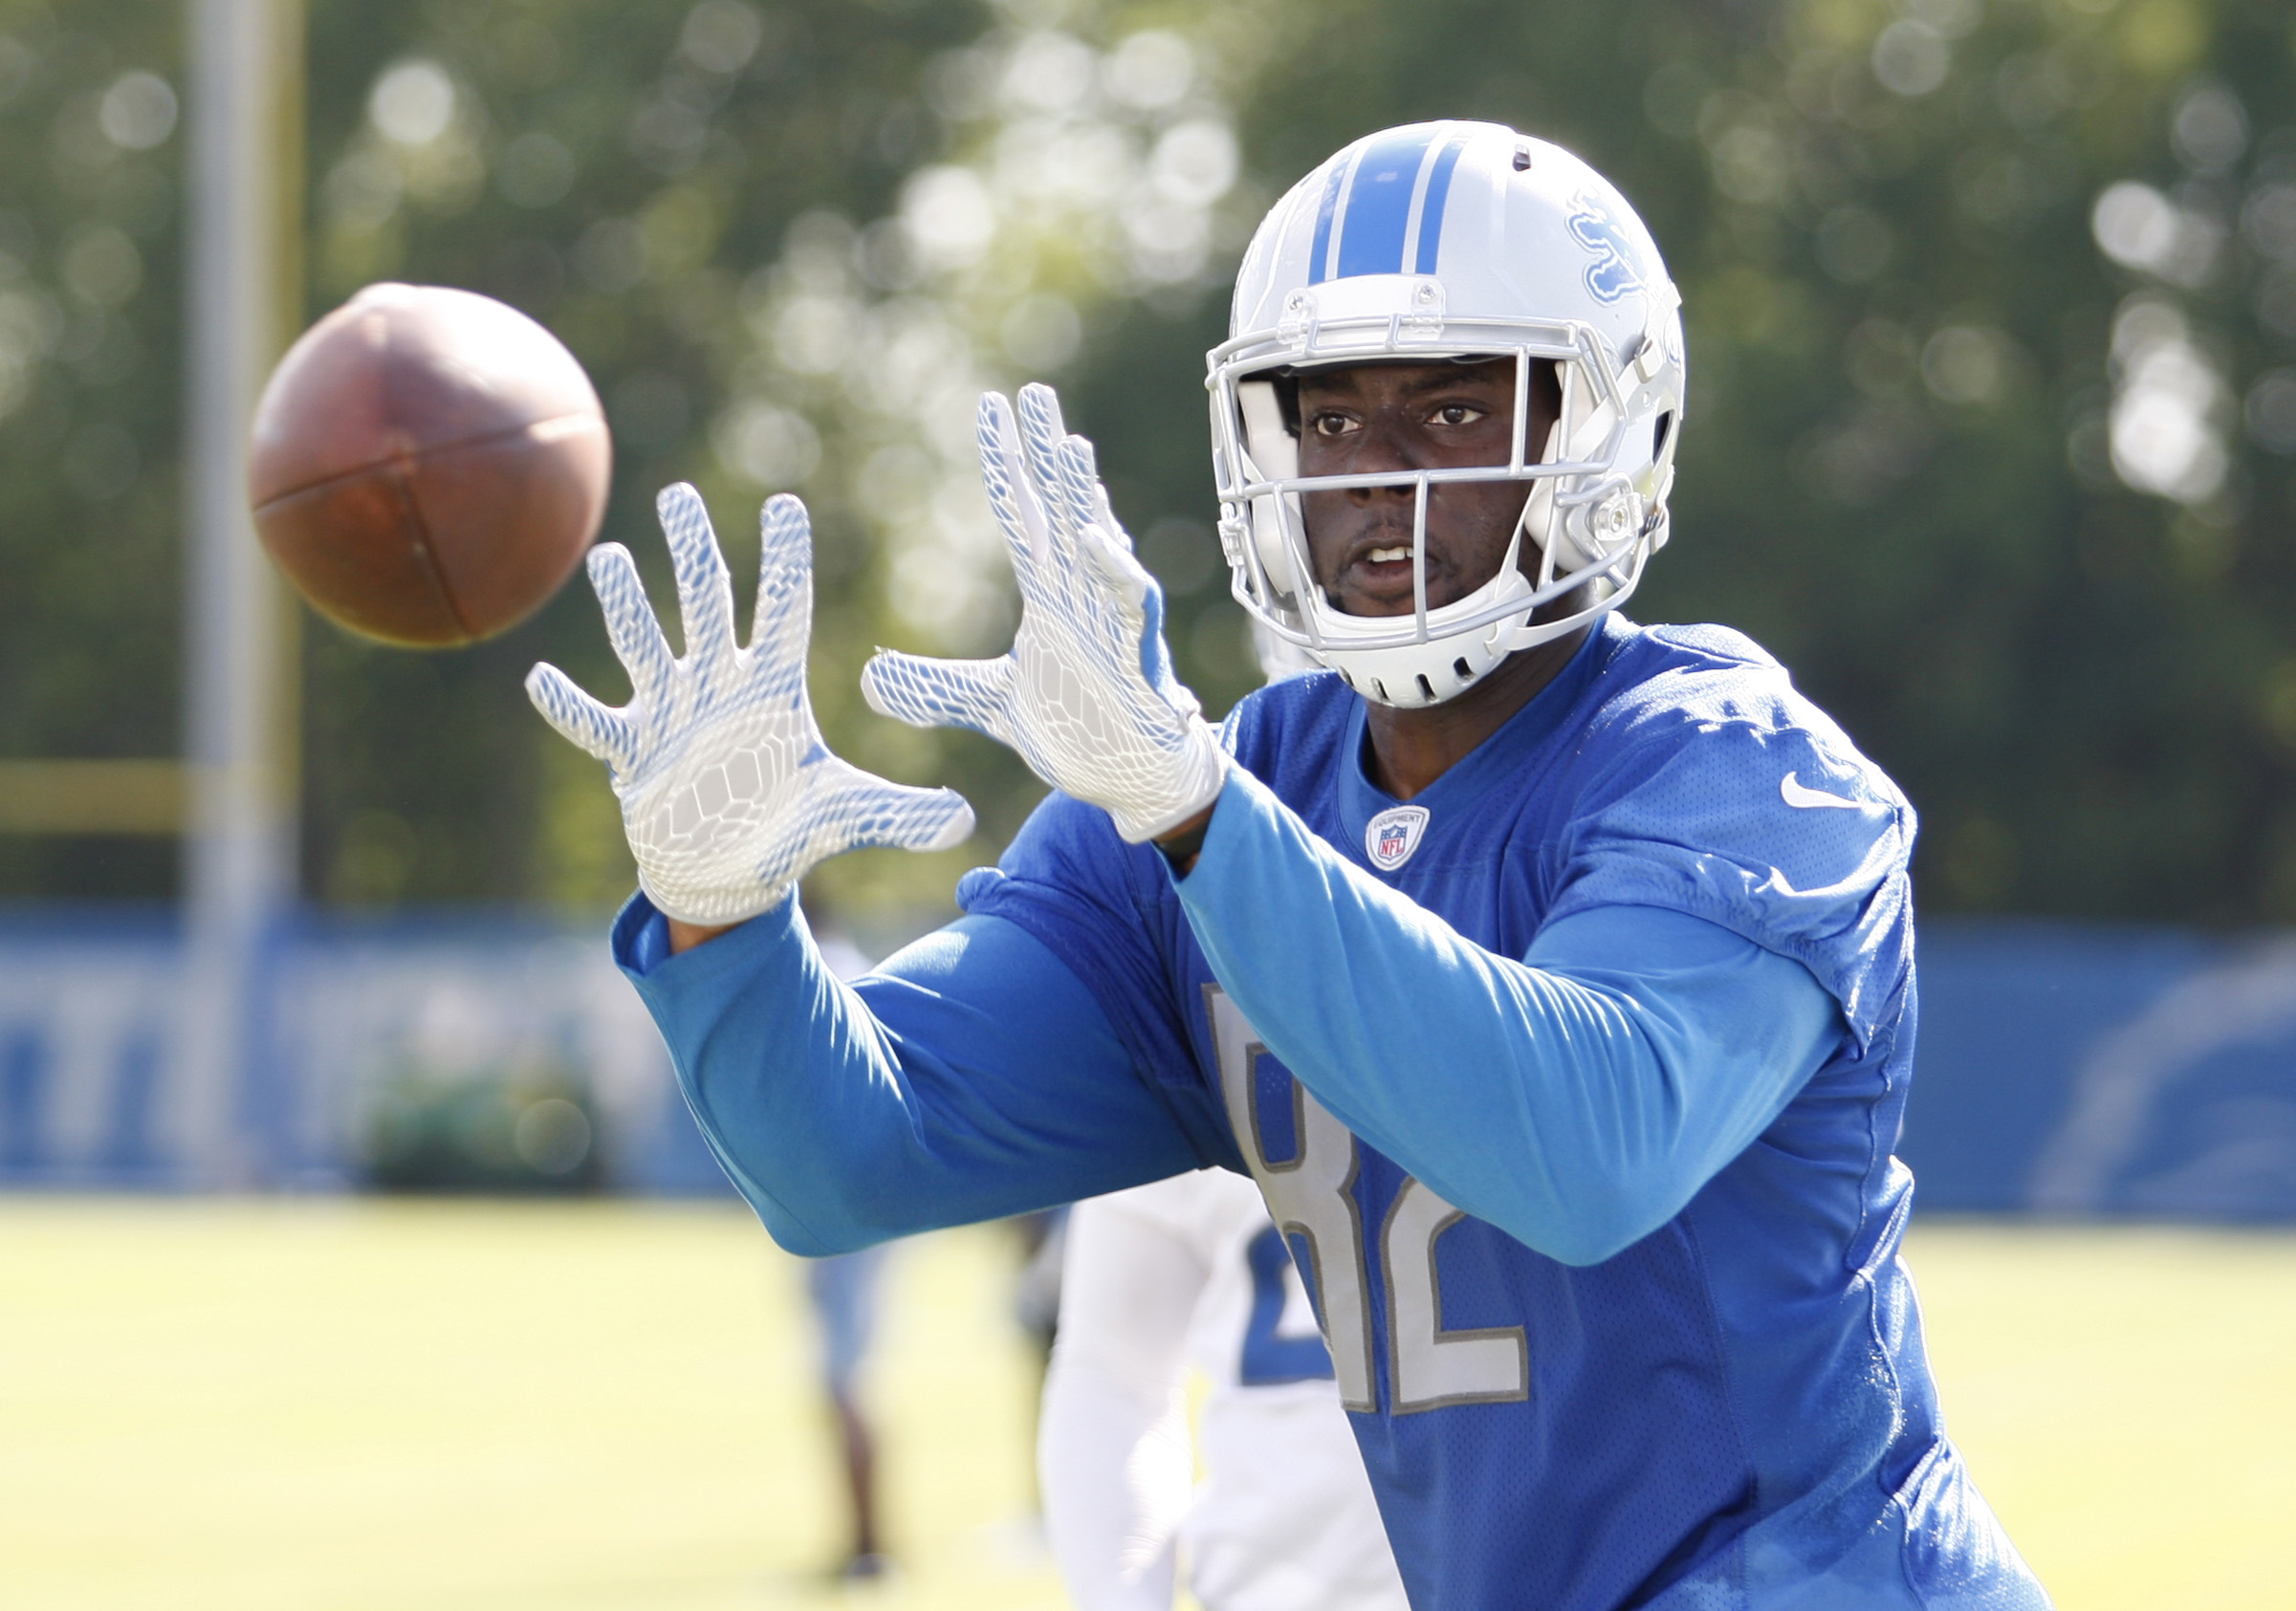 228bfc3d7 Detroit Lions training camp dates  Rookies report July 19 - Pride Of ...